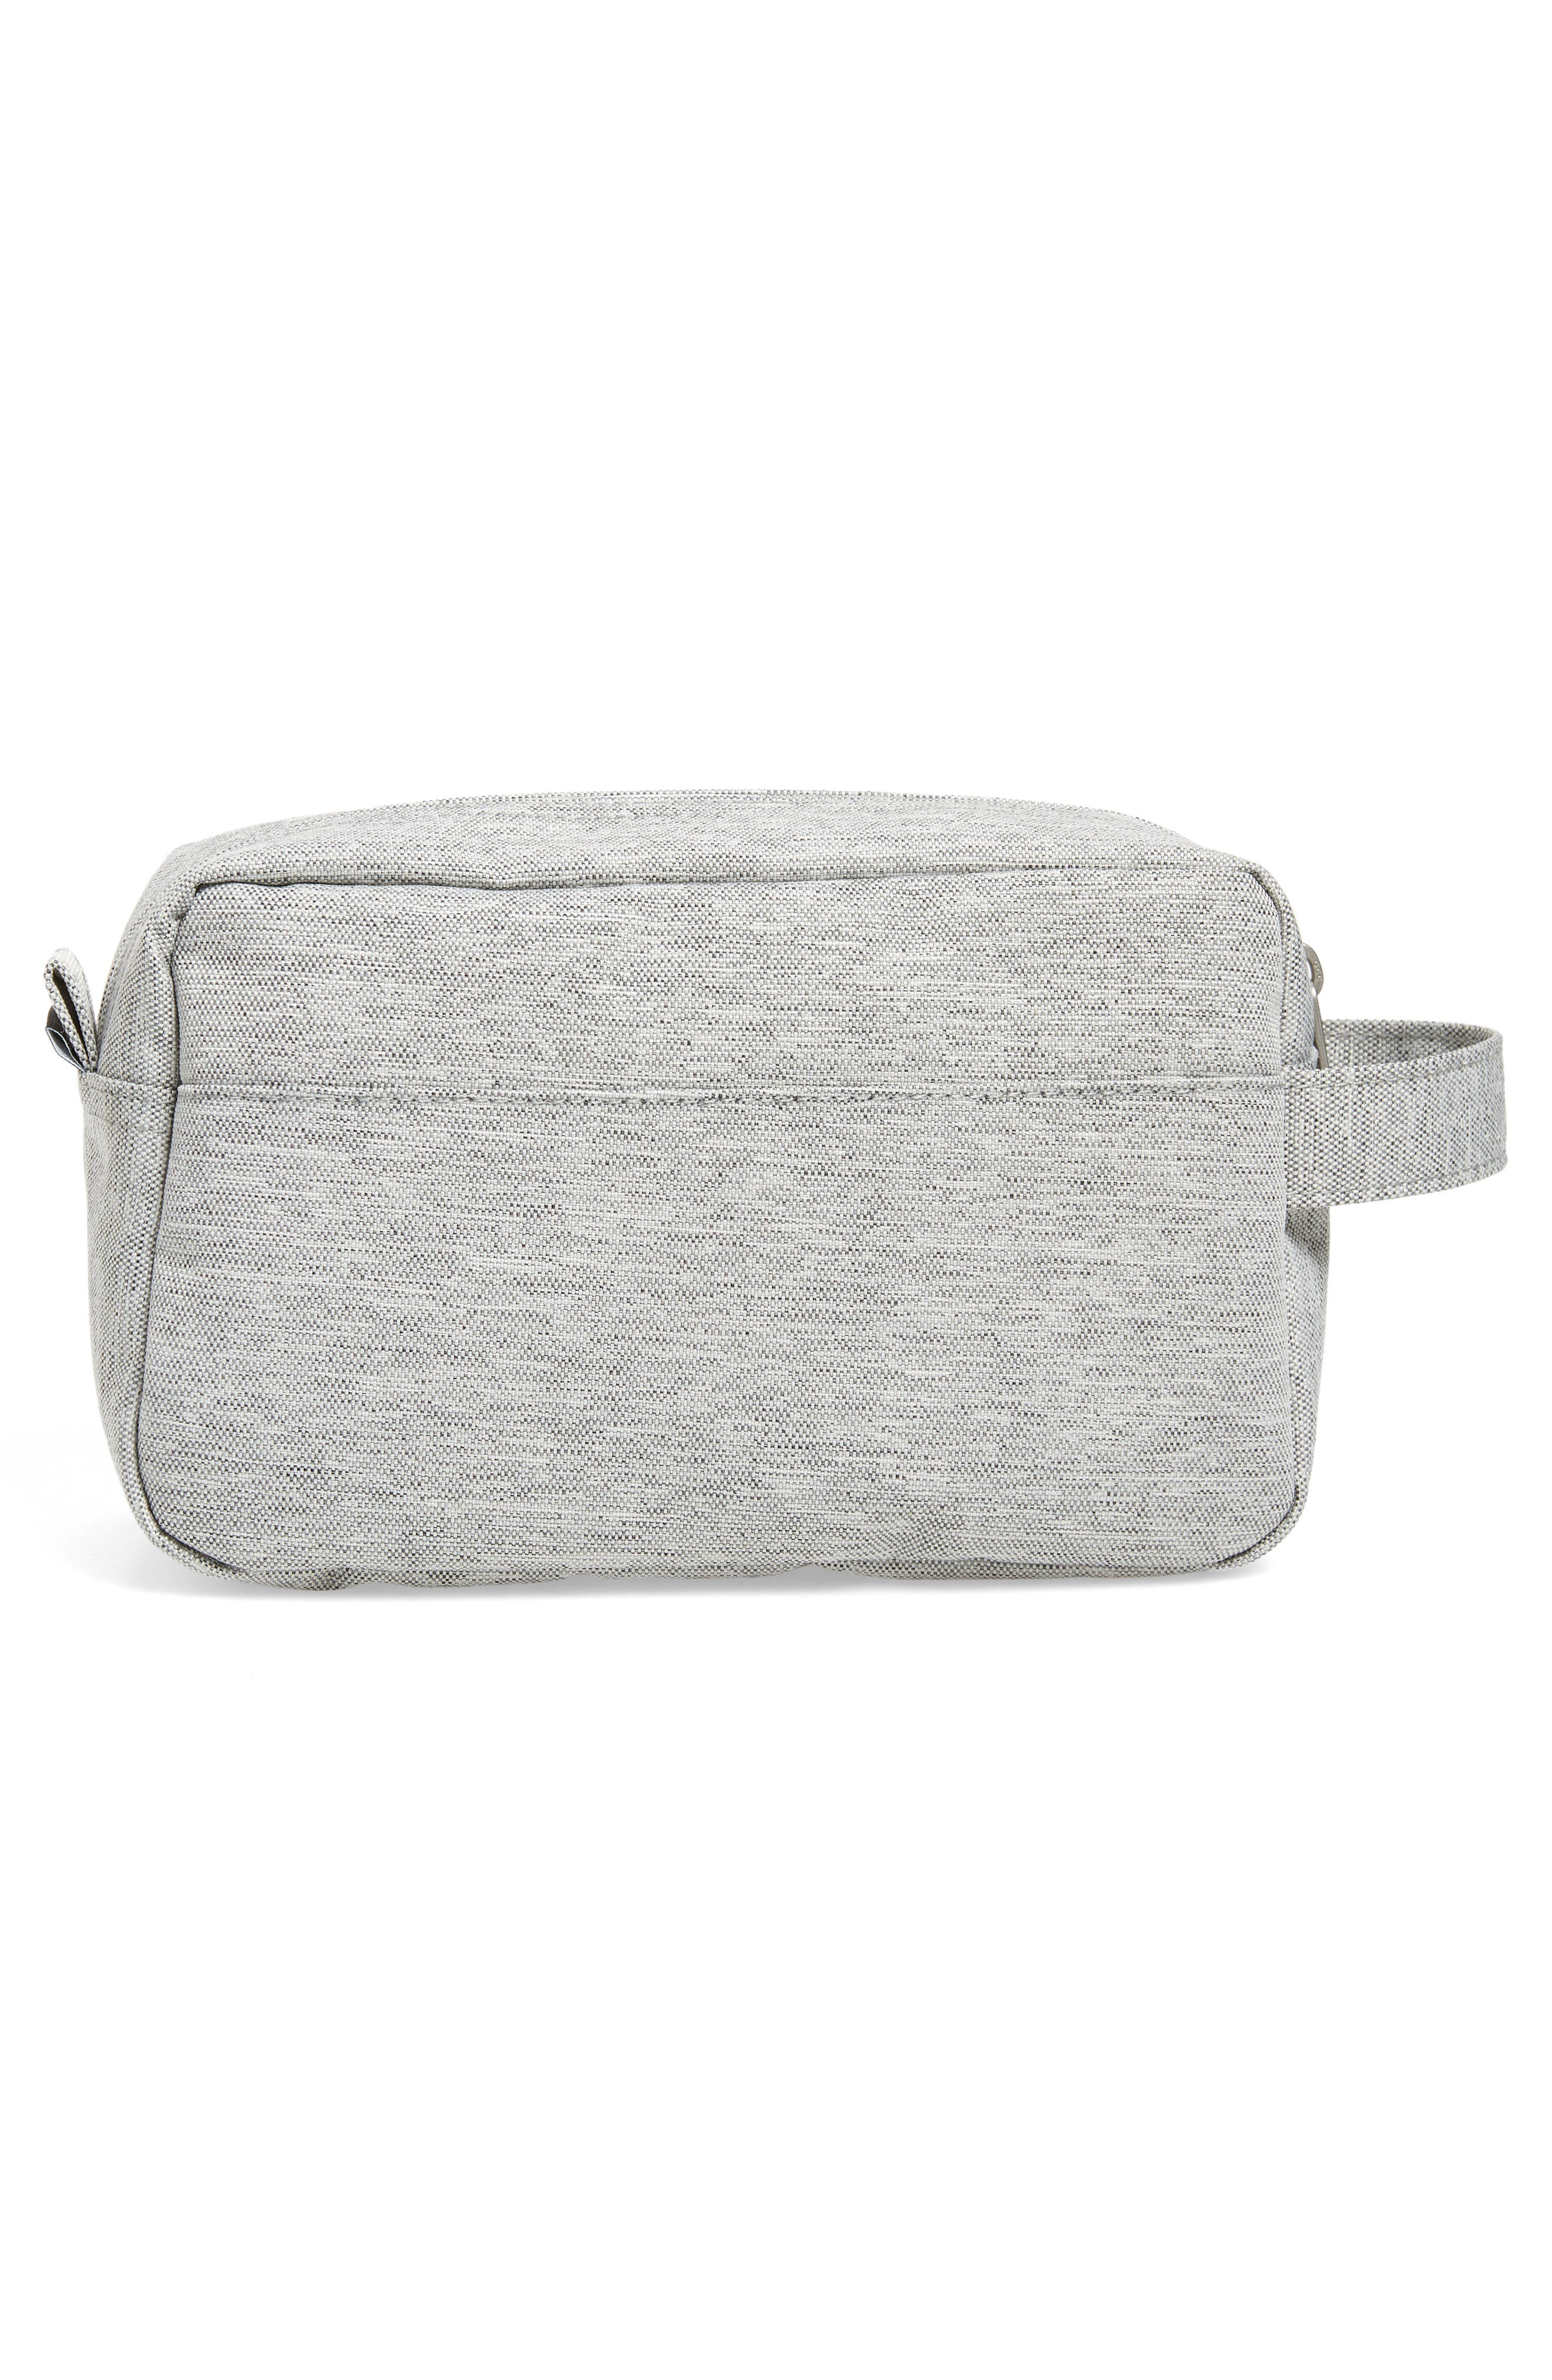 Chapter Carry-On Travel Kit,                             Alternate thumbnail 2, color,                             Light Grey Crosshatch